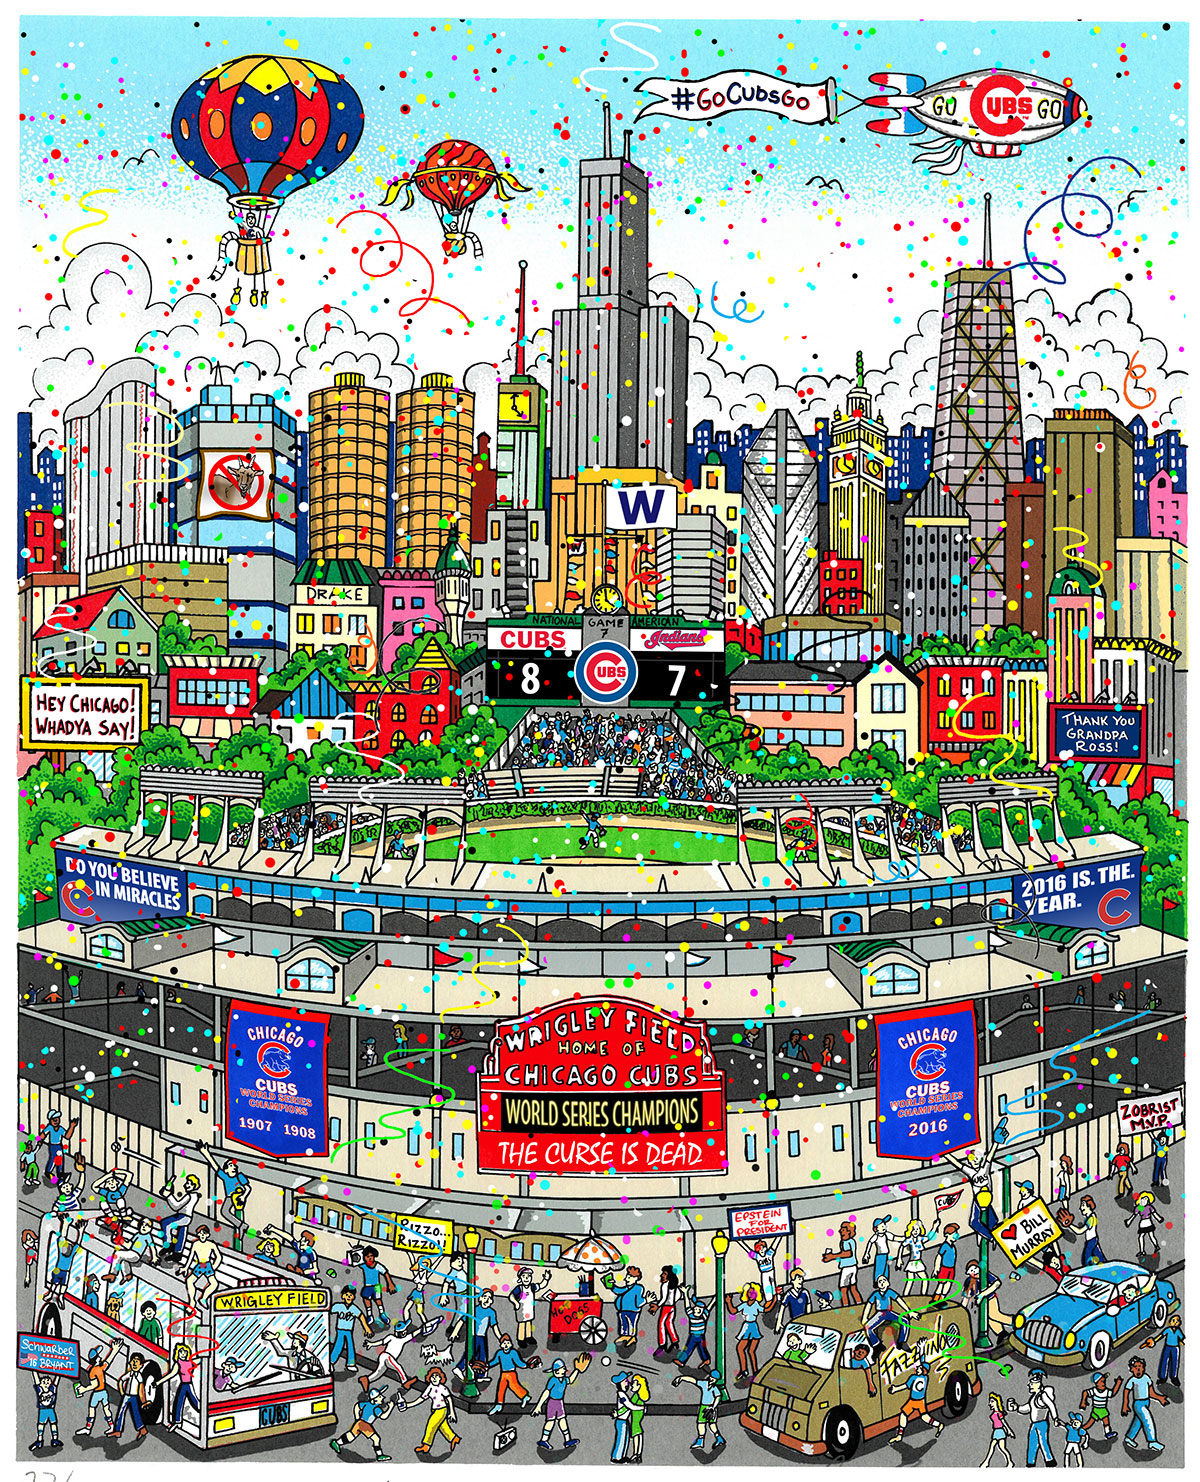 A poster featuring Wrigley Field in Chicago, celebrating the Cubs winning the World Series